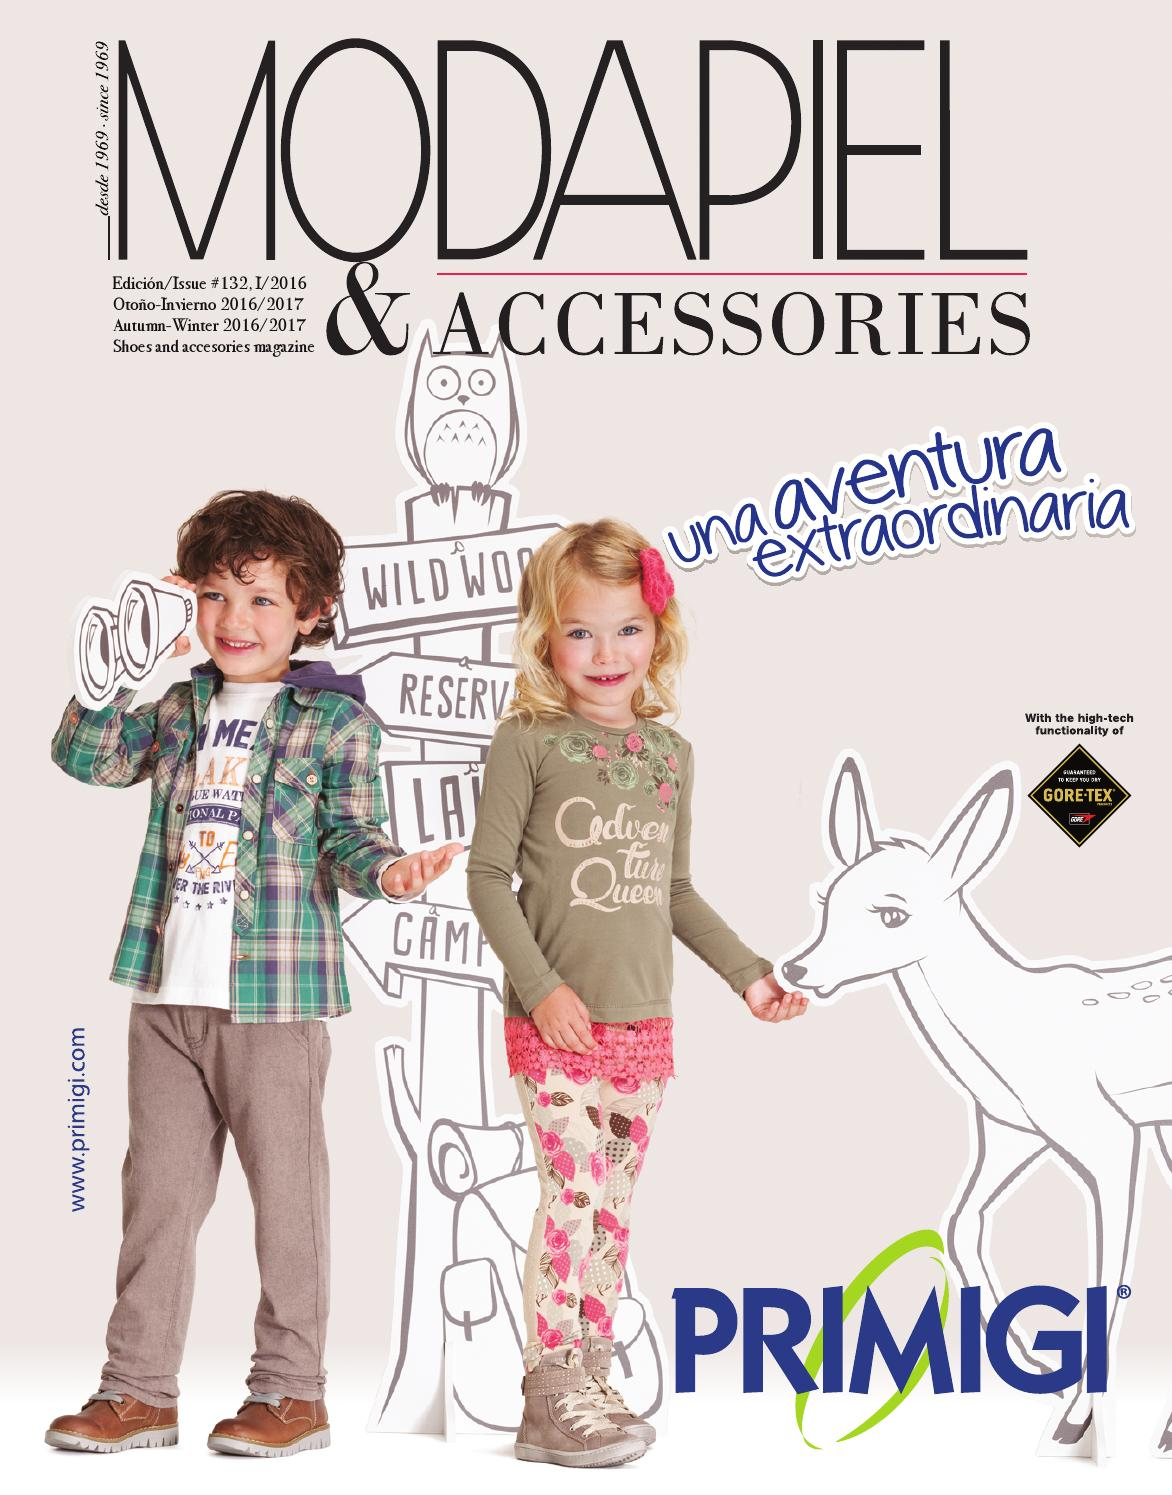 Modapiel   Accessories 132 Shoes and accessories magazine by Prensa Técnica  S.L. - issuu 914d61c1a85